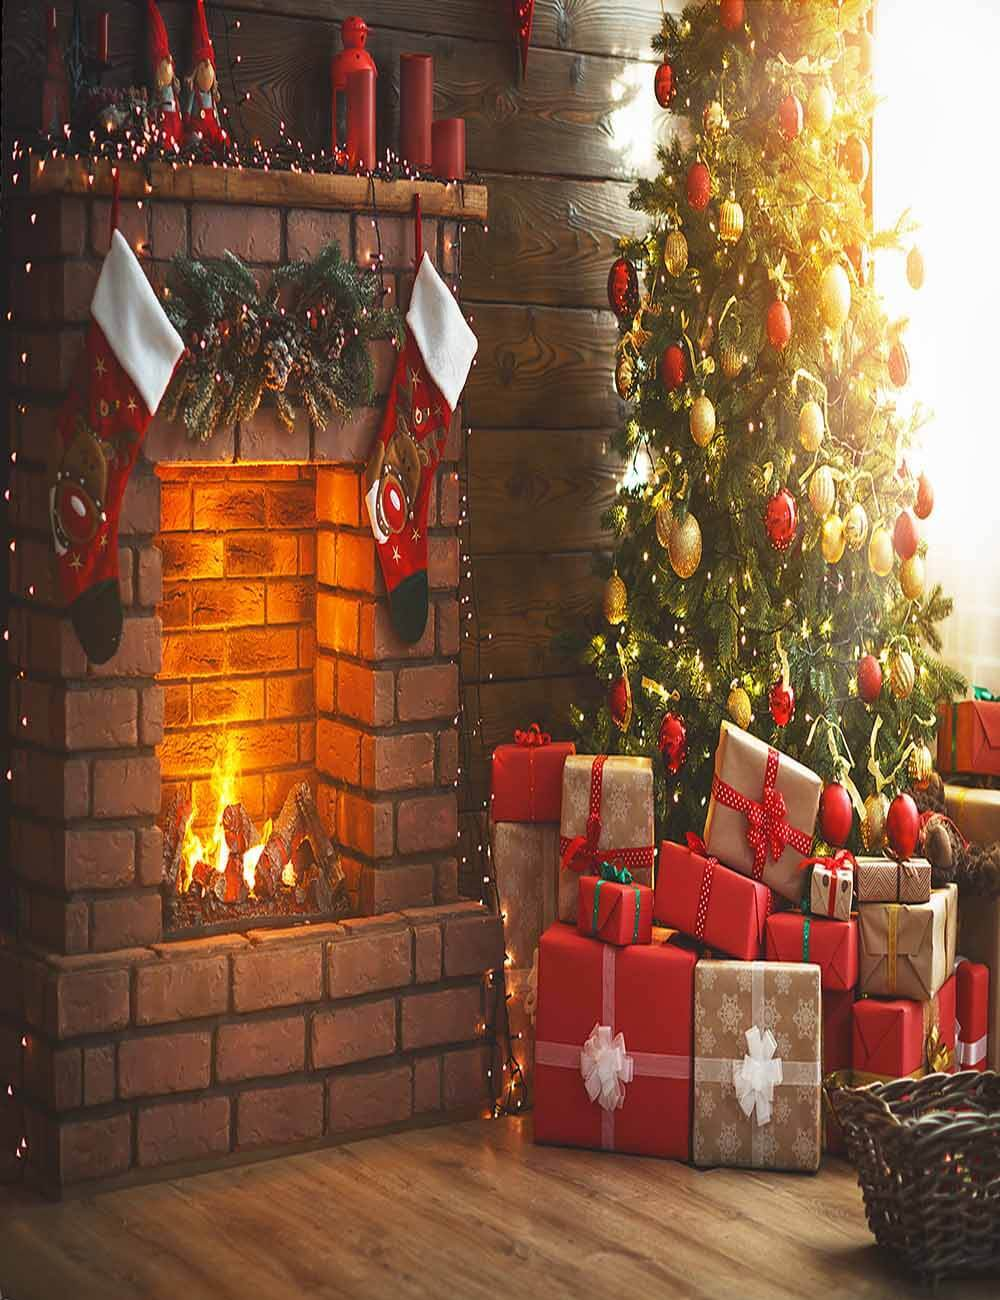 Interior Classic Christmas Tree Fireplace Photography